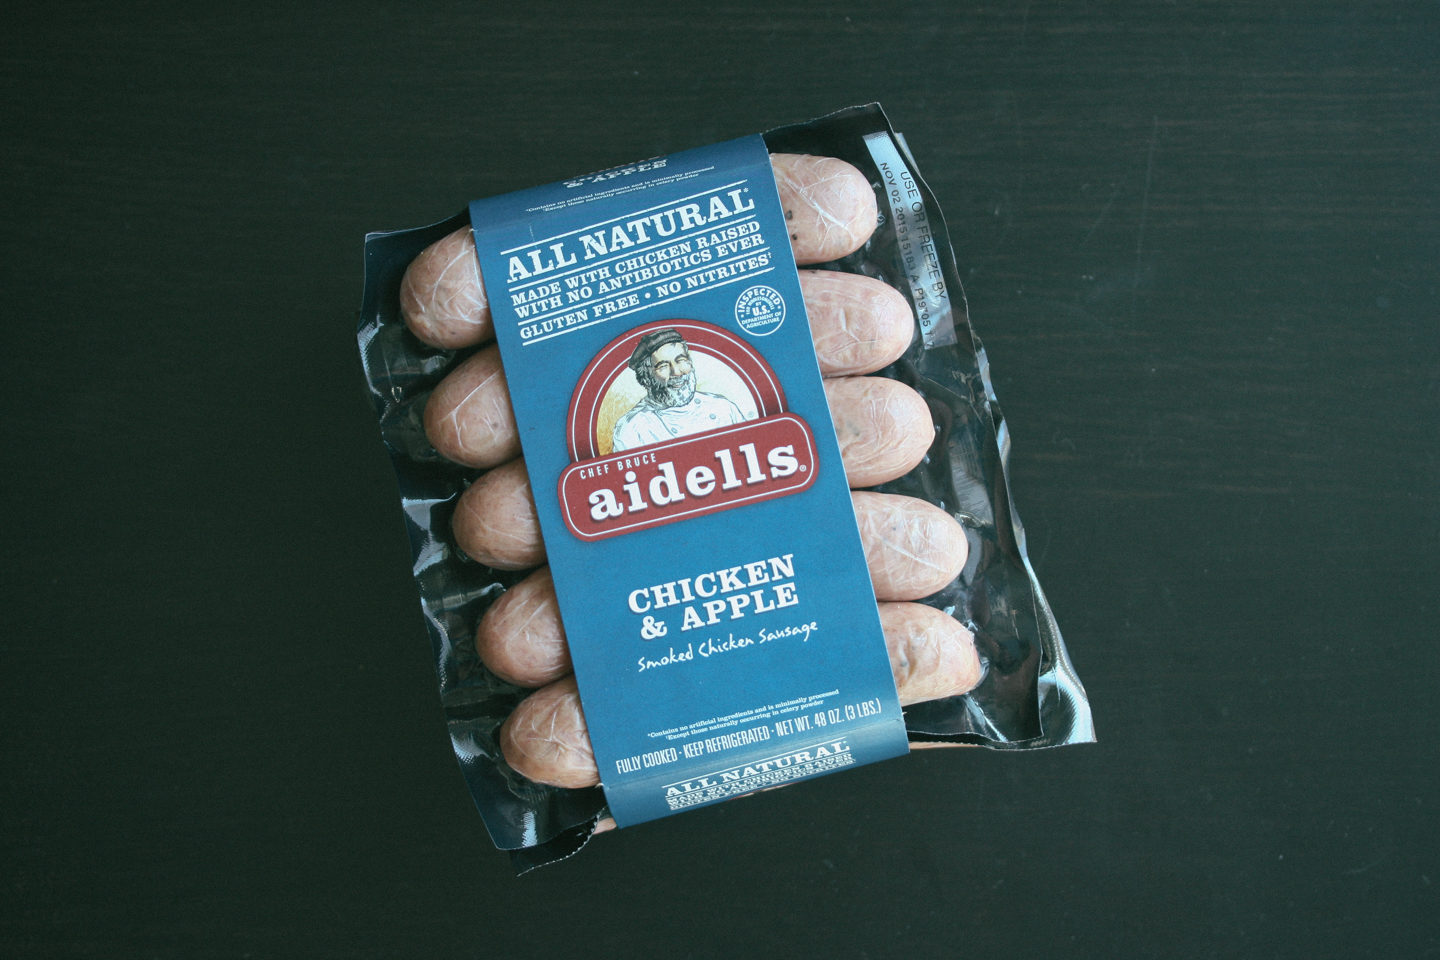 Aidells Chicken & Apple Sausage